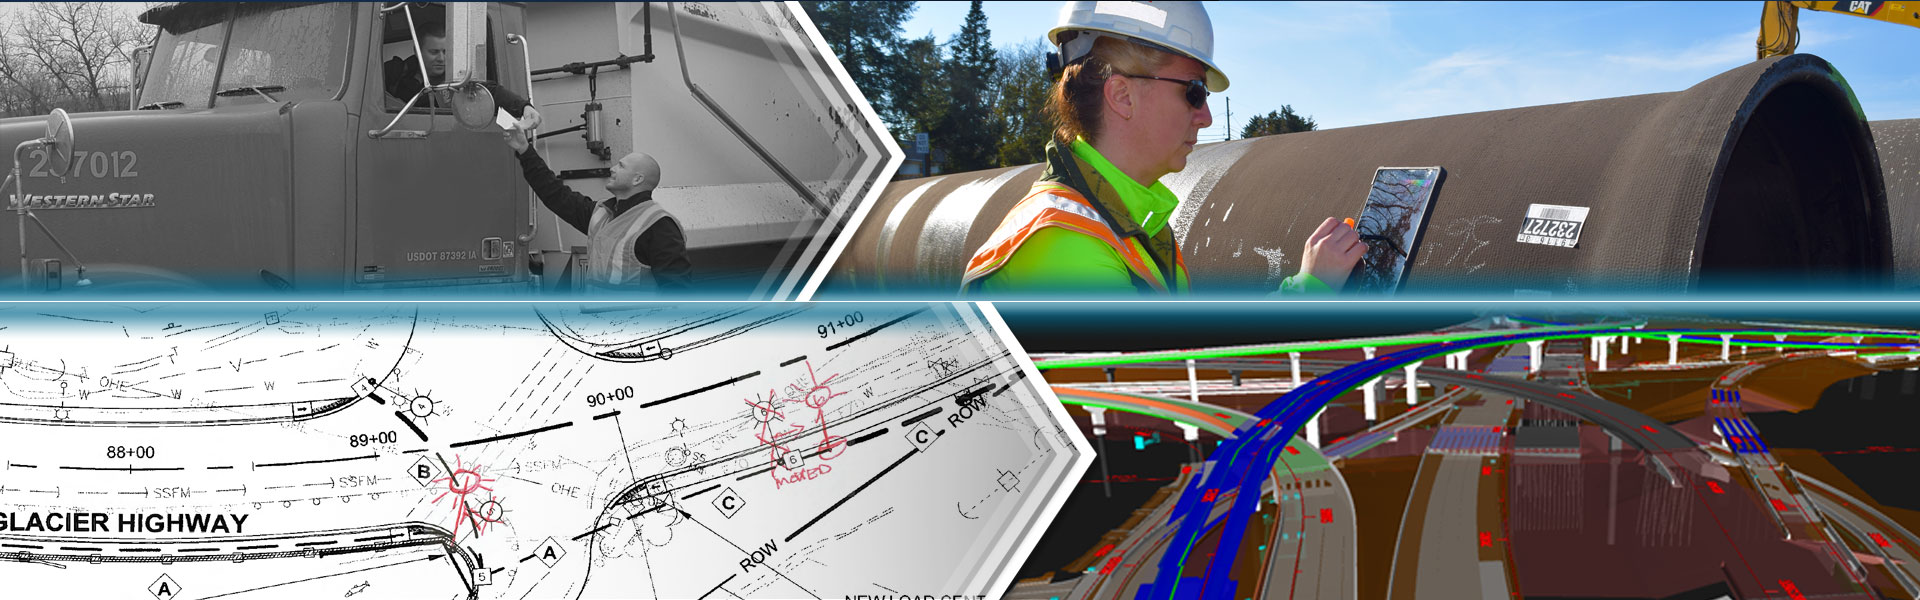 Photo and illustration montage of a delivery truck, a worker using a tablet at a jobsite, a digital map of a highway, and a 3D visualization of a highway.